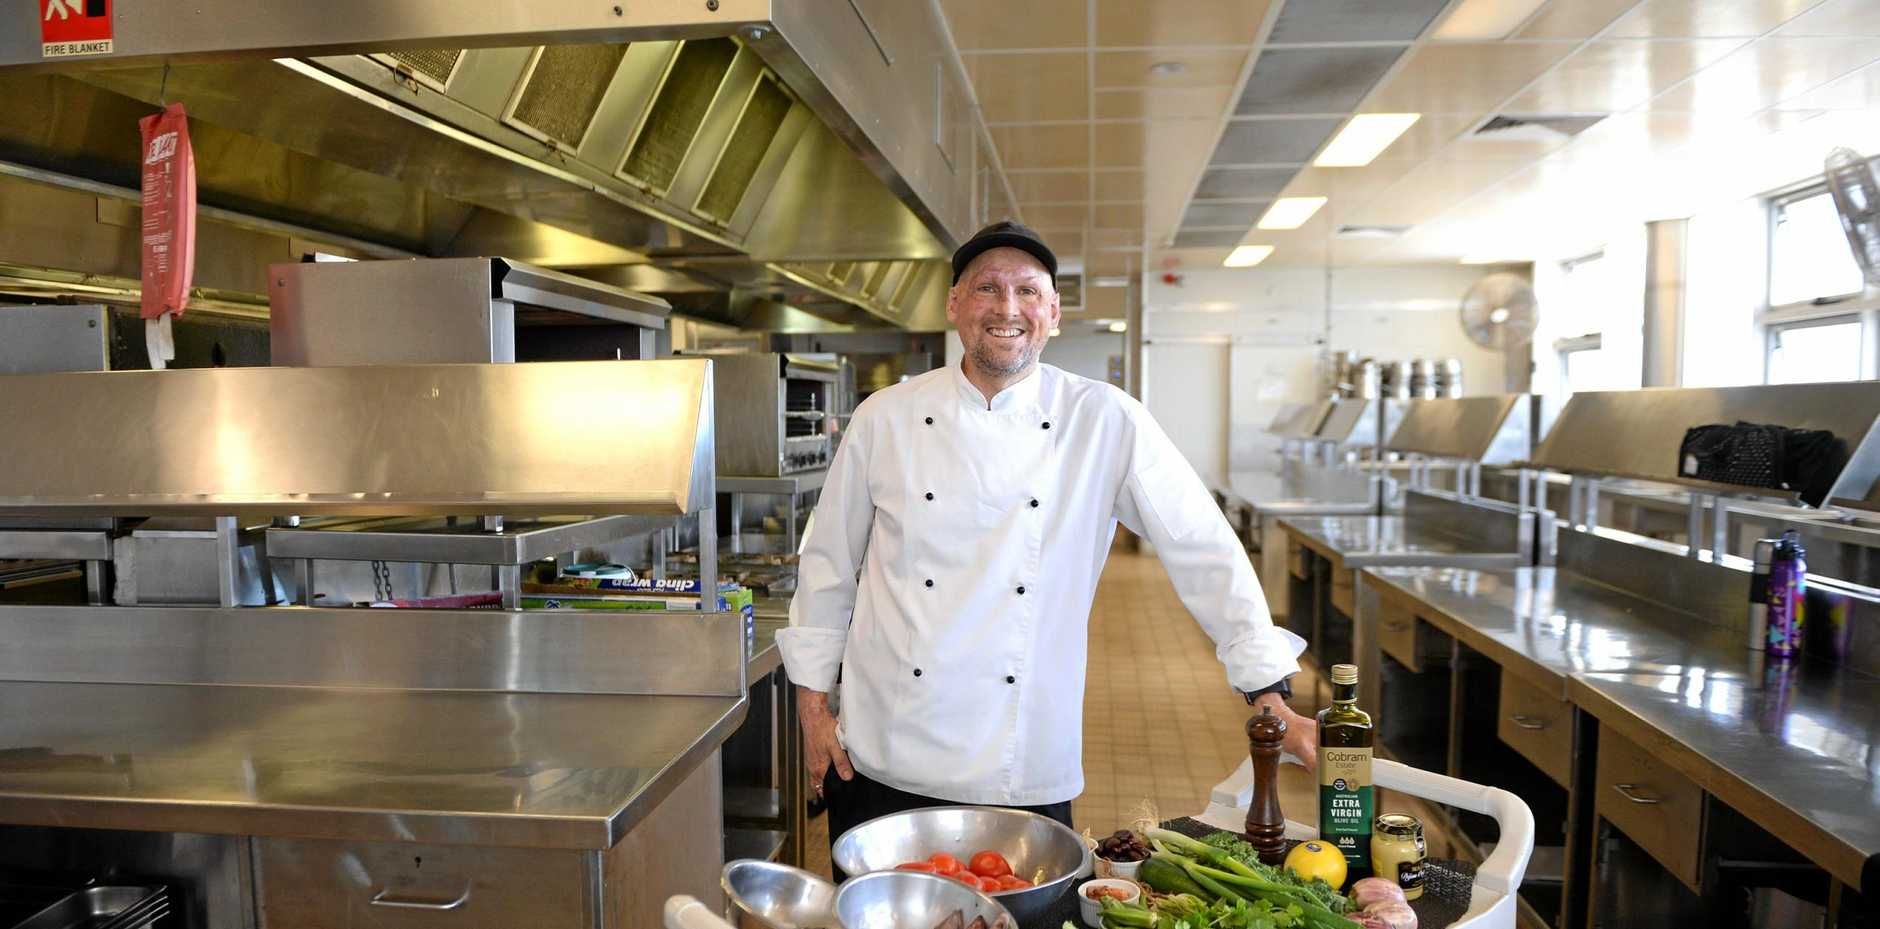 Chef Matt Golinski has returned to Mackay as part of The Greater Whitsunday Food Network's Queensland Week events. Photo Lee Constable / Daily Mercury